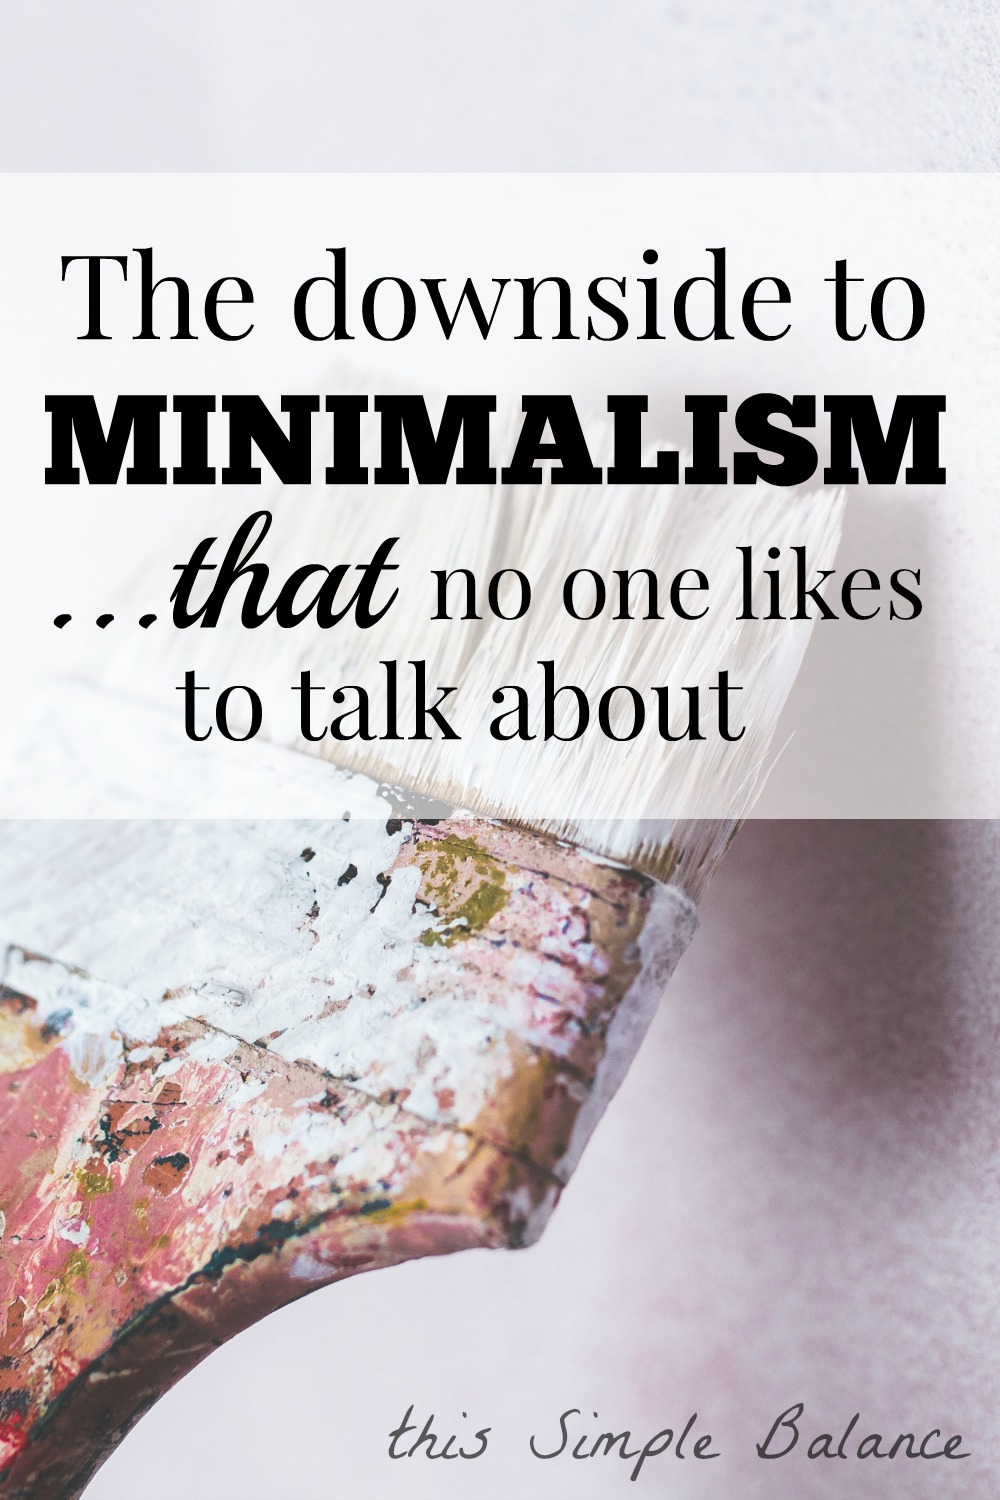 The Downside to Minimalism: Is there a downside to minimalism? Can everyone really benefit from any walk of life or socioeconomic status?